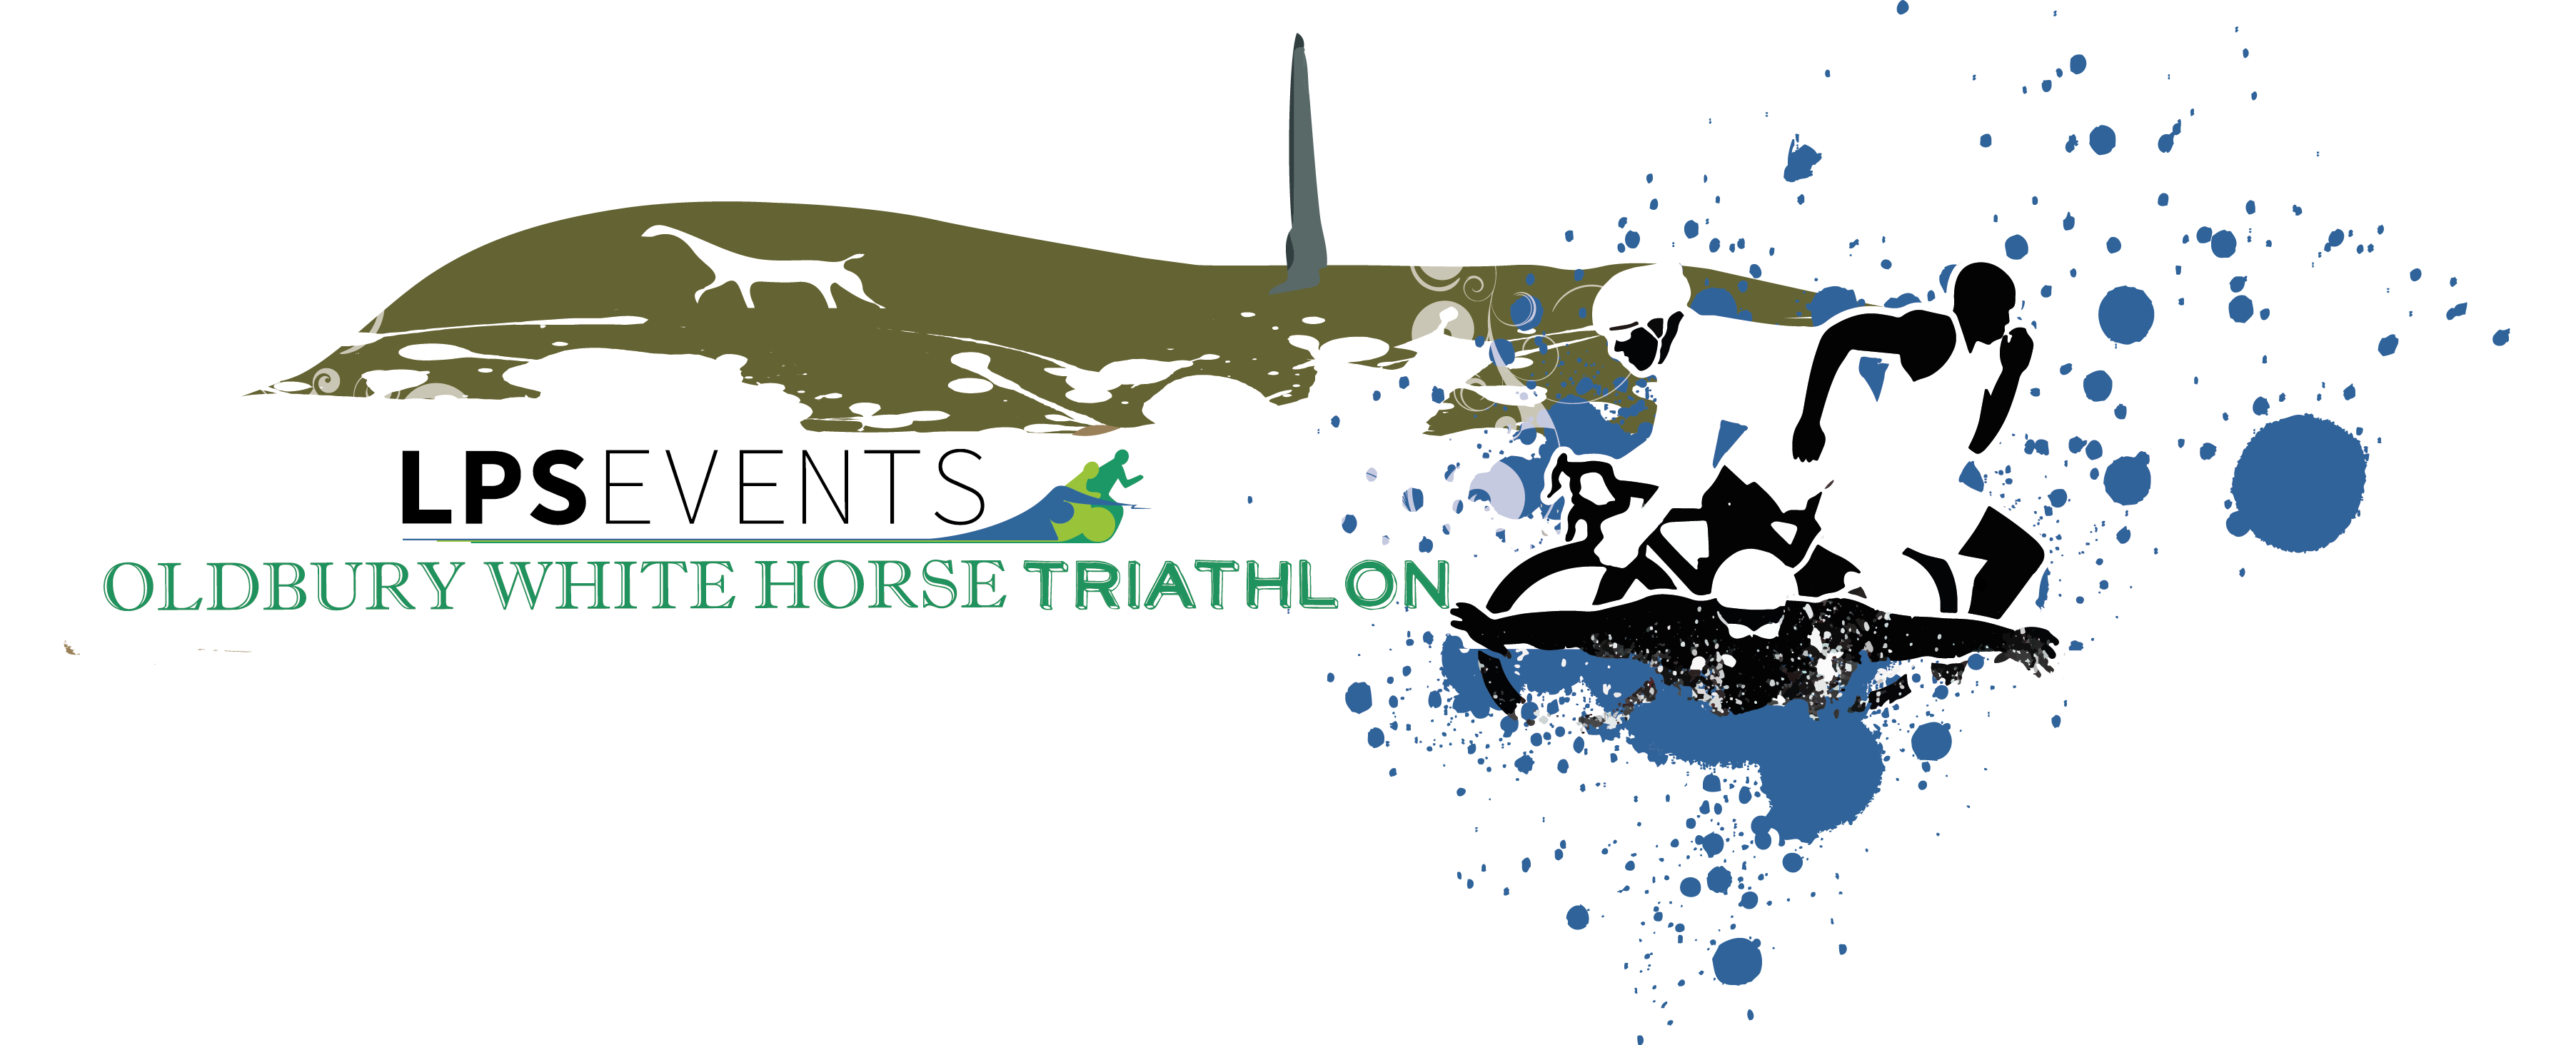 Oldbury White Horse Sprint Triathlon - cover image